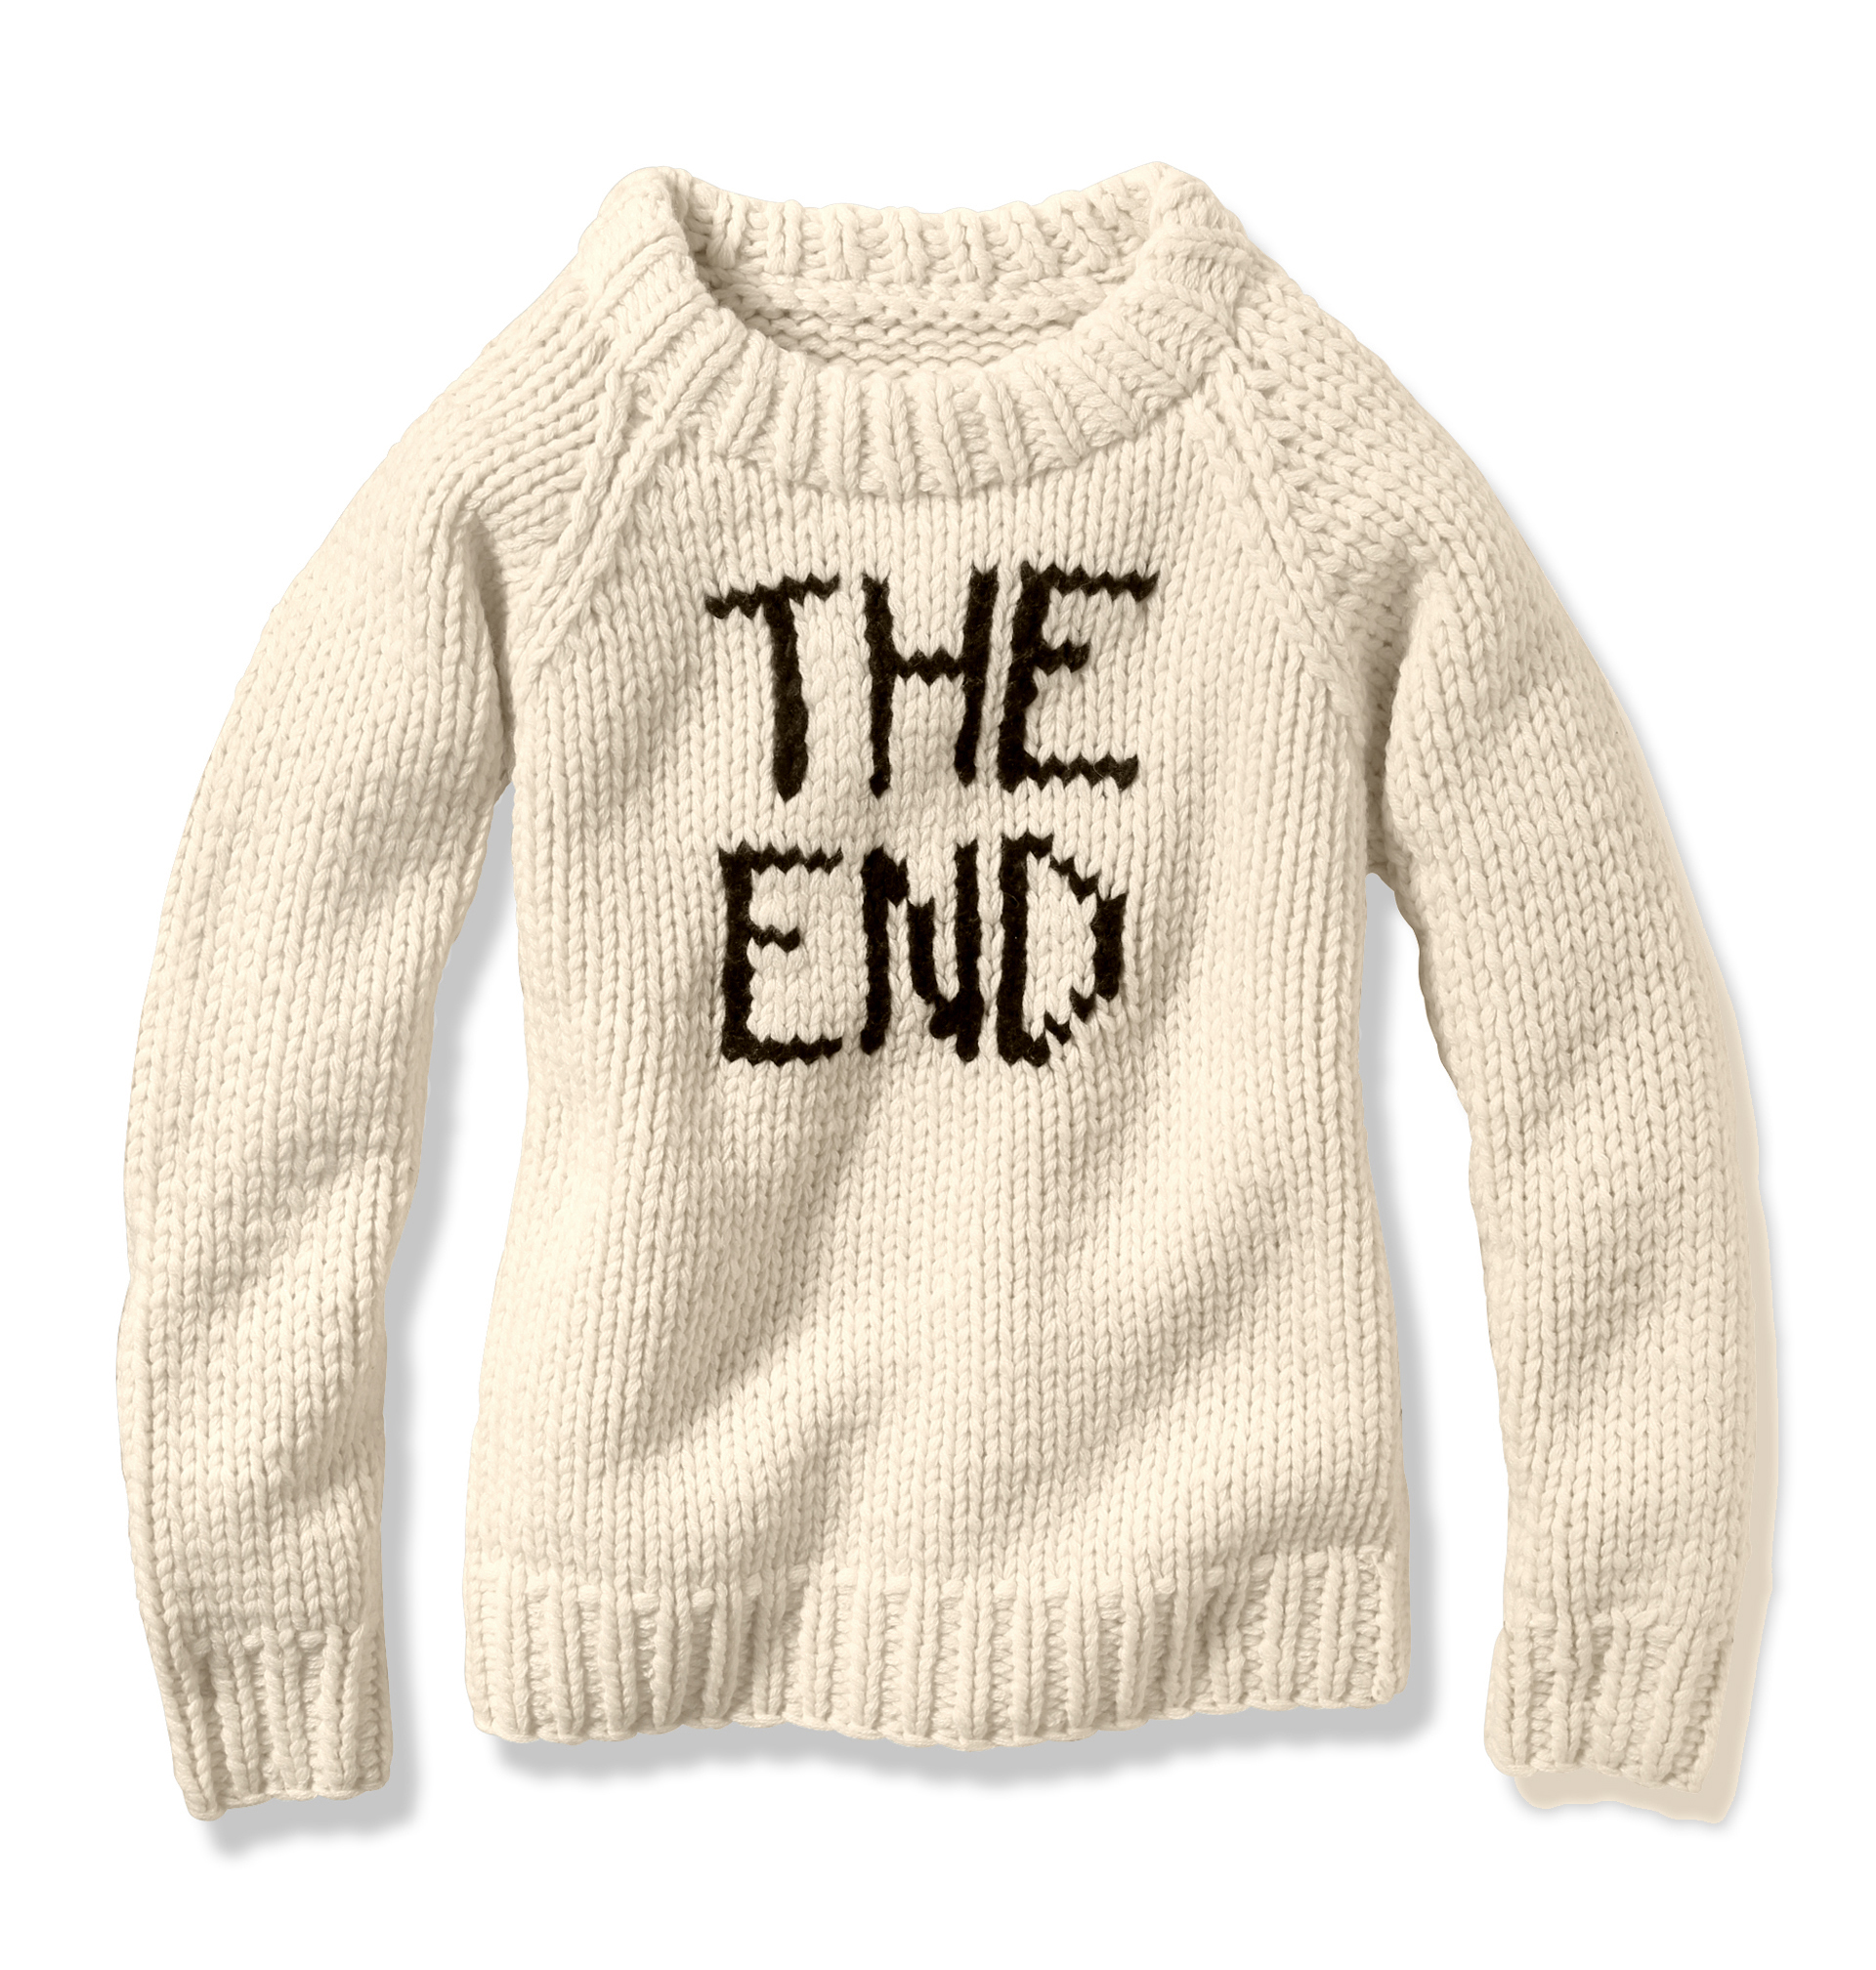 Buy low price, high quality fresh tops sweater with worldwide shipping on topinsurances.ga